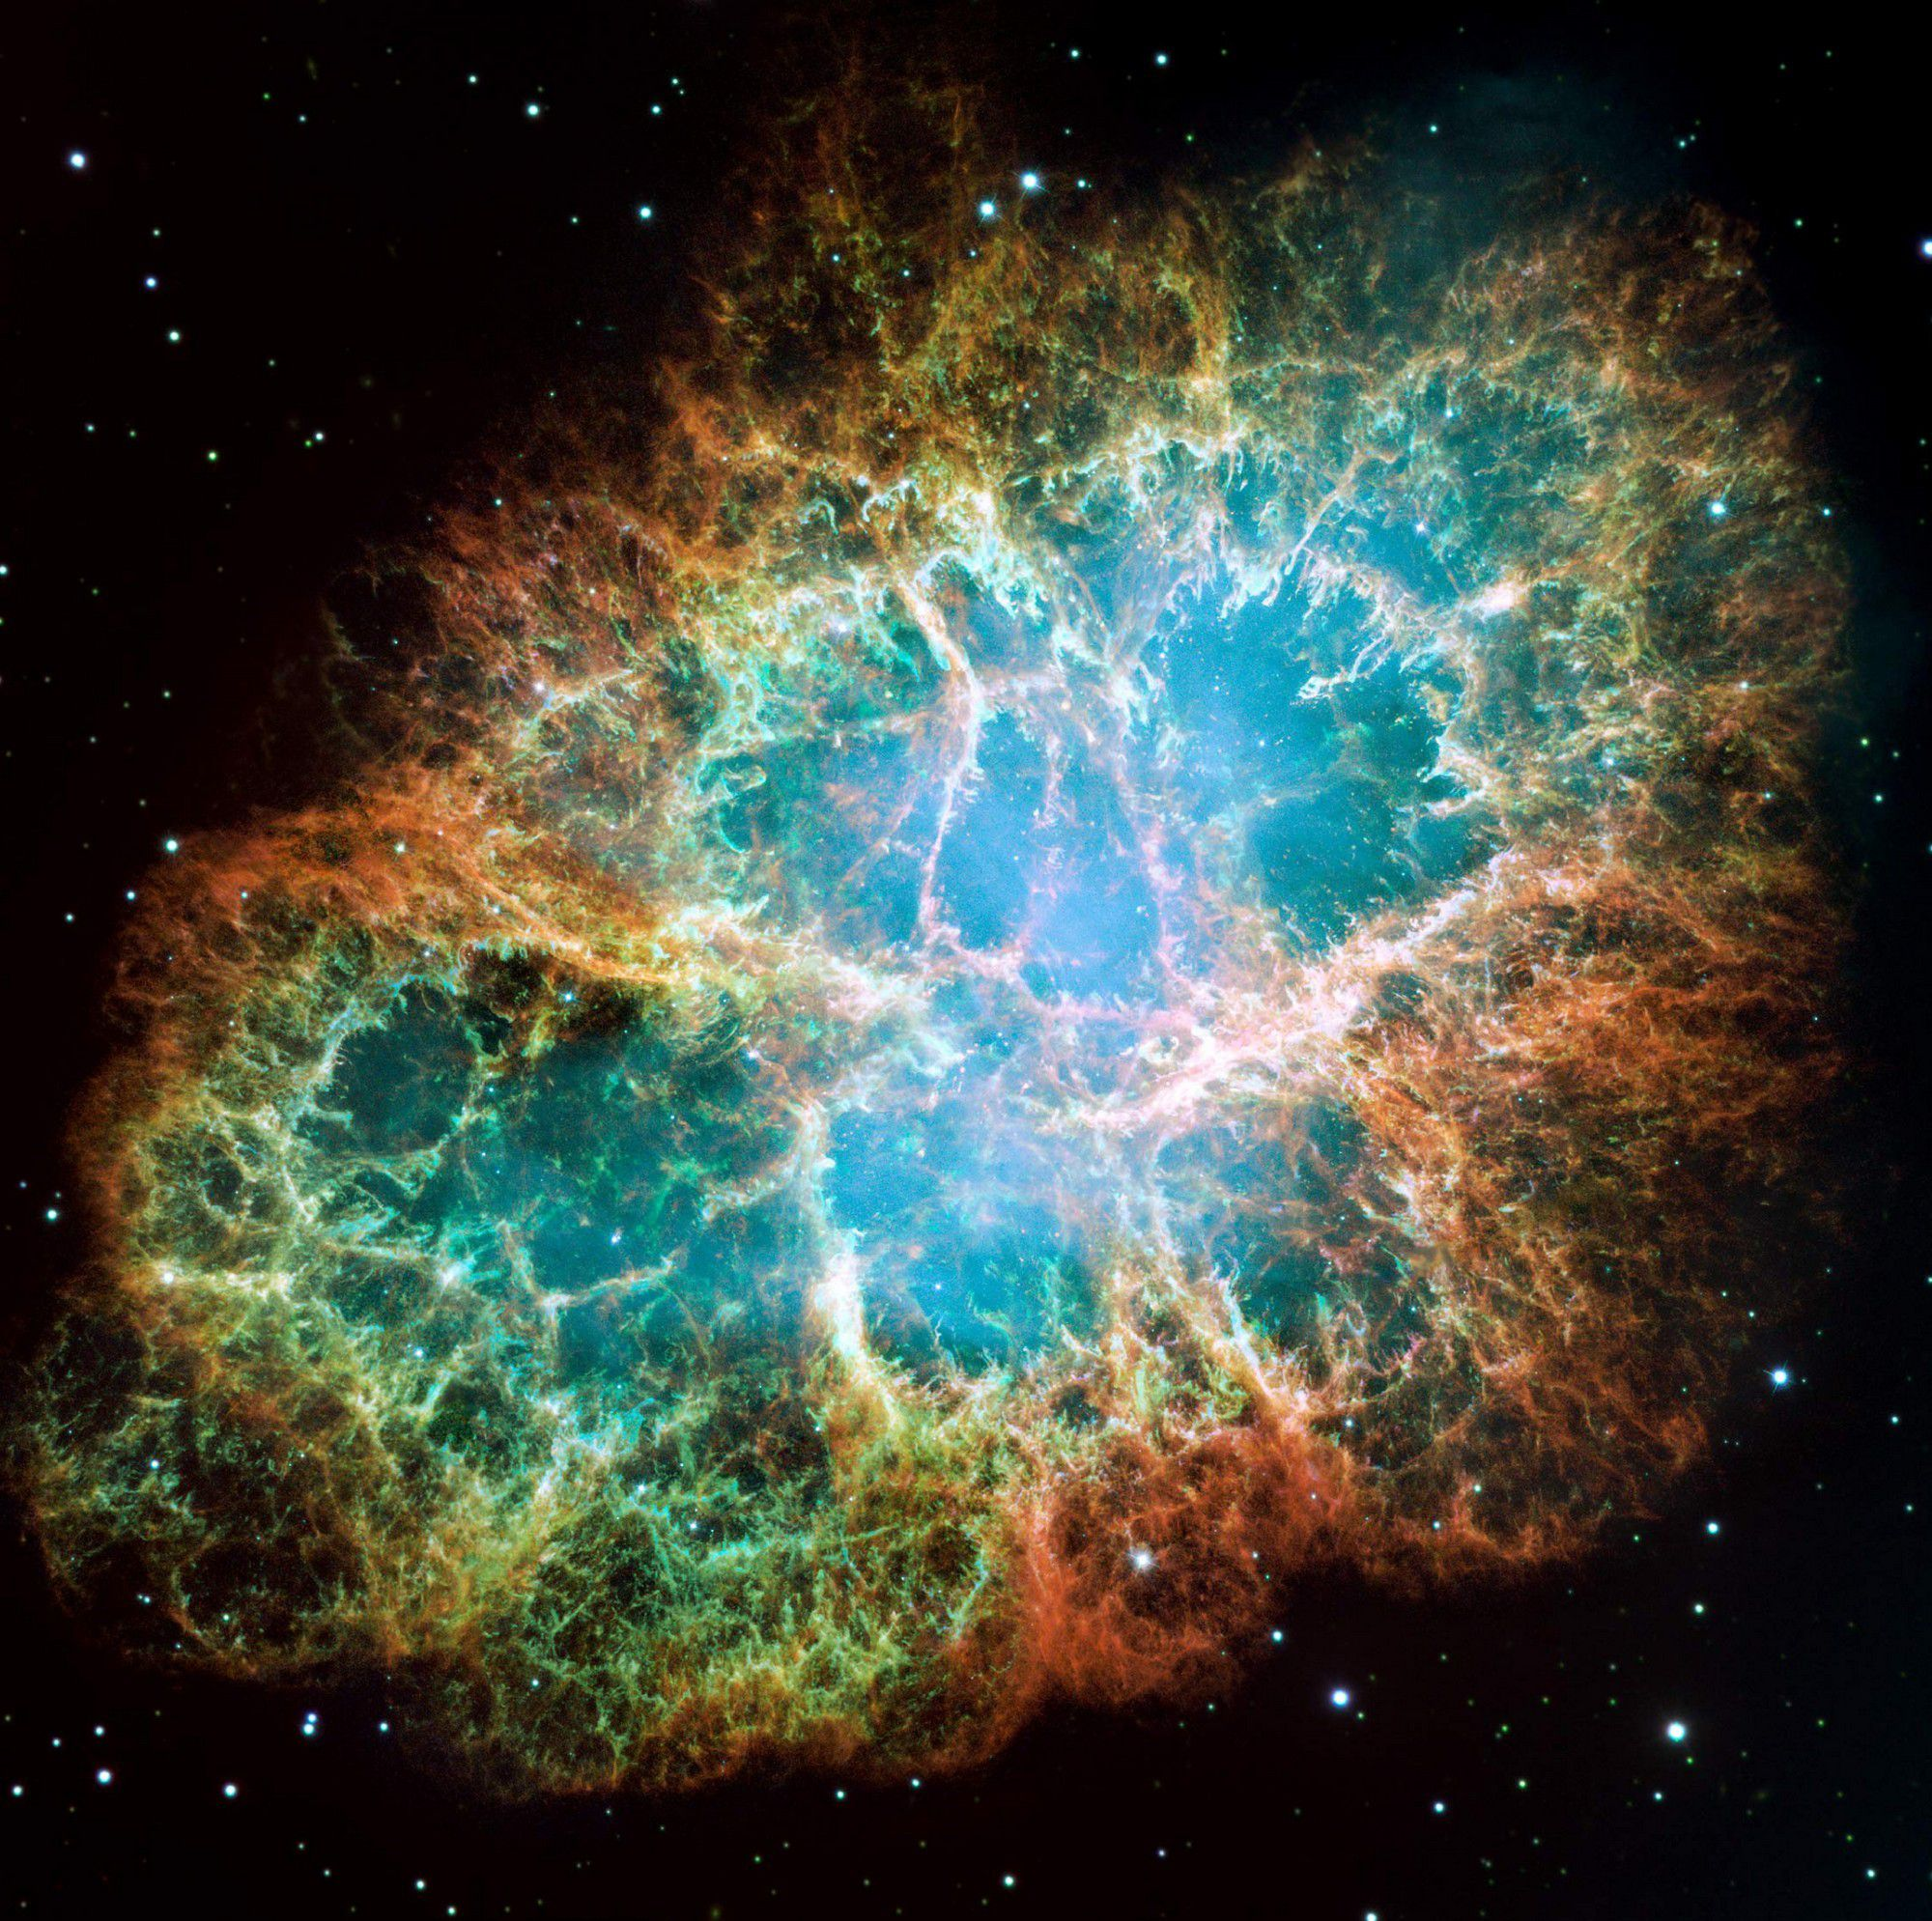 All the beauty and complexity of the filaments of gas that form the Crab nebula can be seen on this image from the Hubble space telescope. Credit NASA